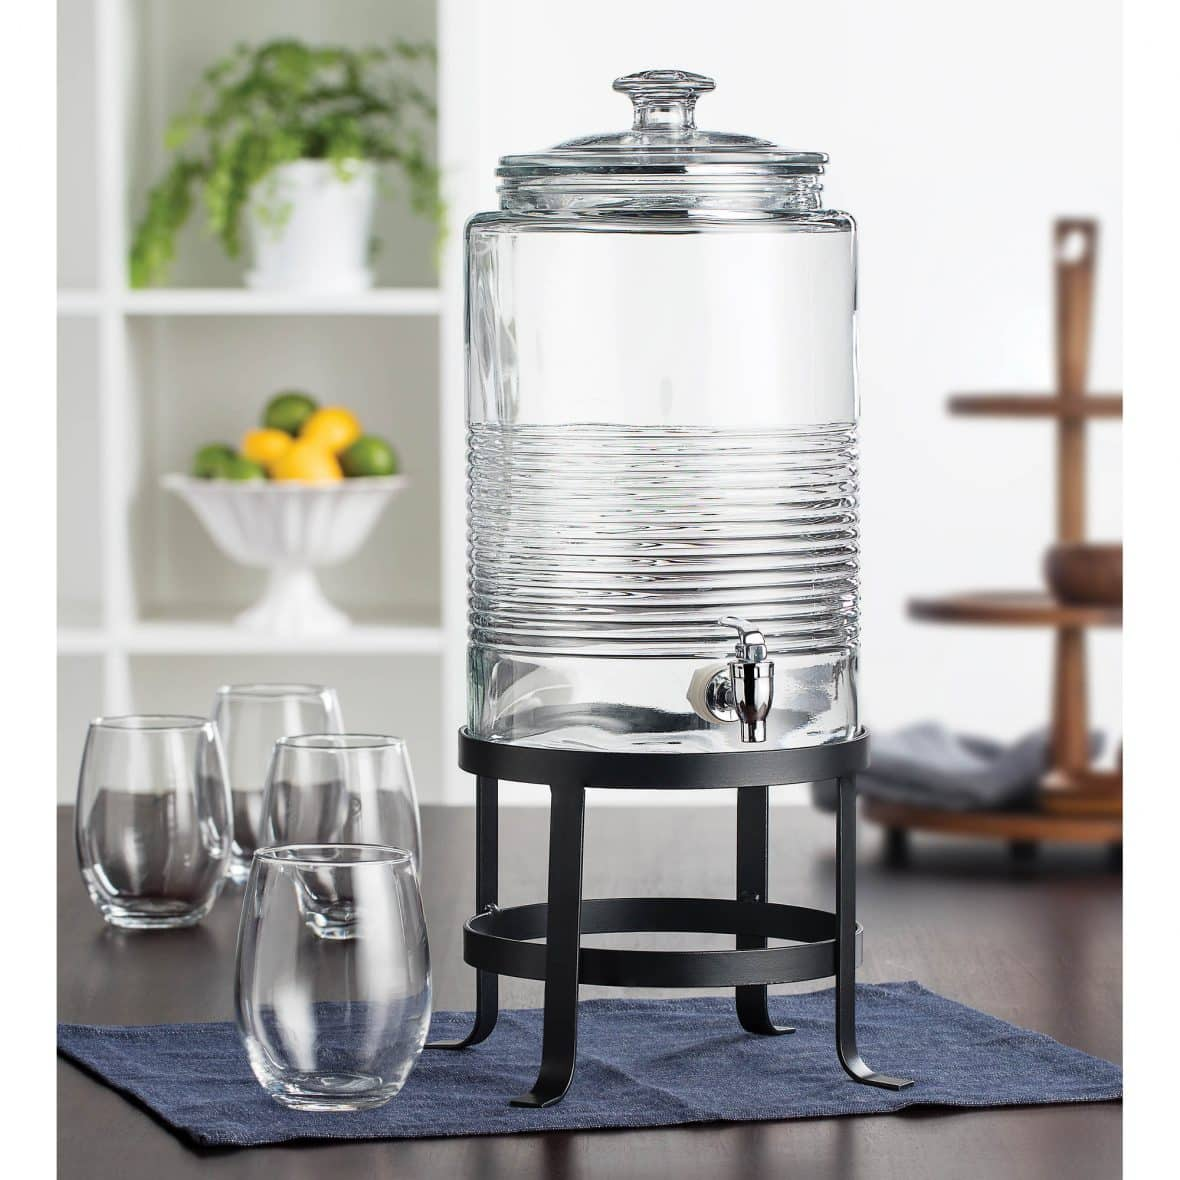 Berkley Jensen Beverage Dispenser $10.98